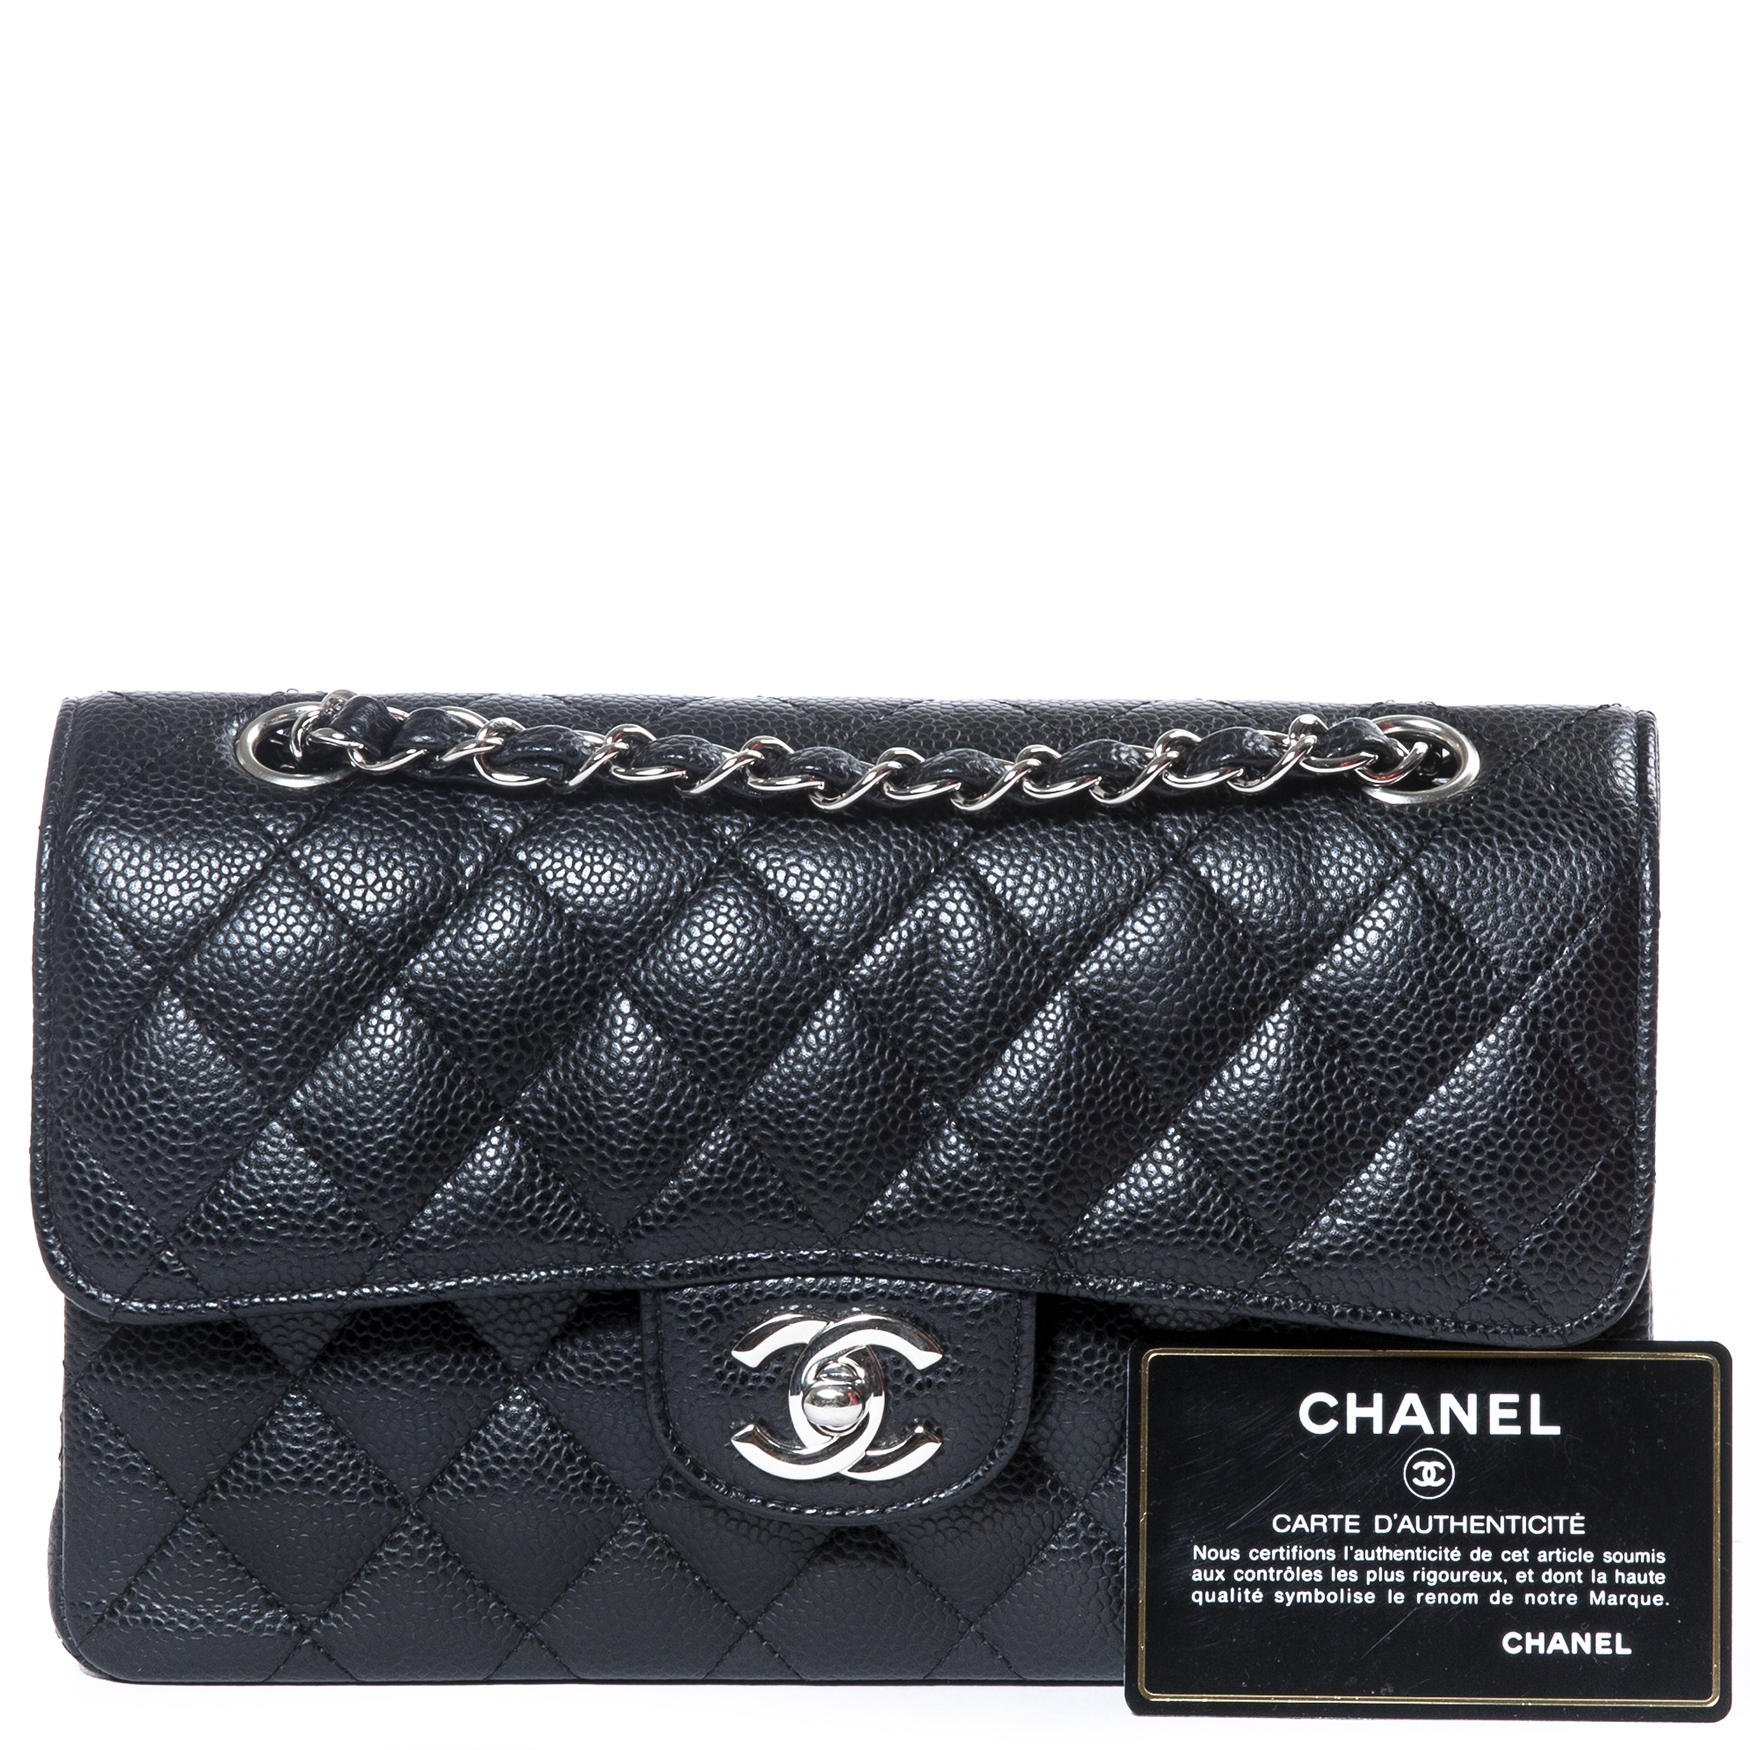 a04dde9169 Sold. Chanel Black Caviar Leather Small Classic Flap Bag PHW · Chanel